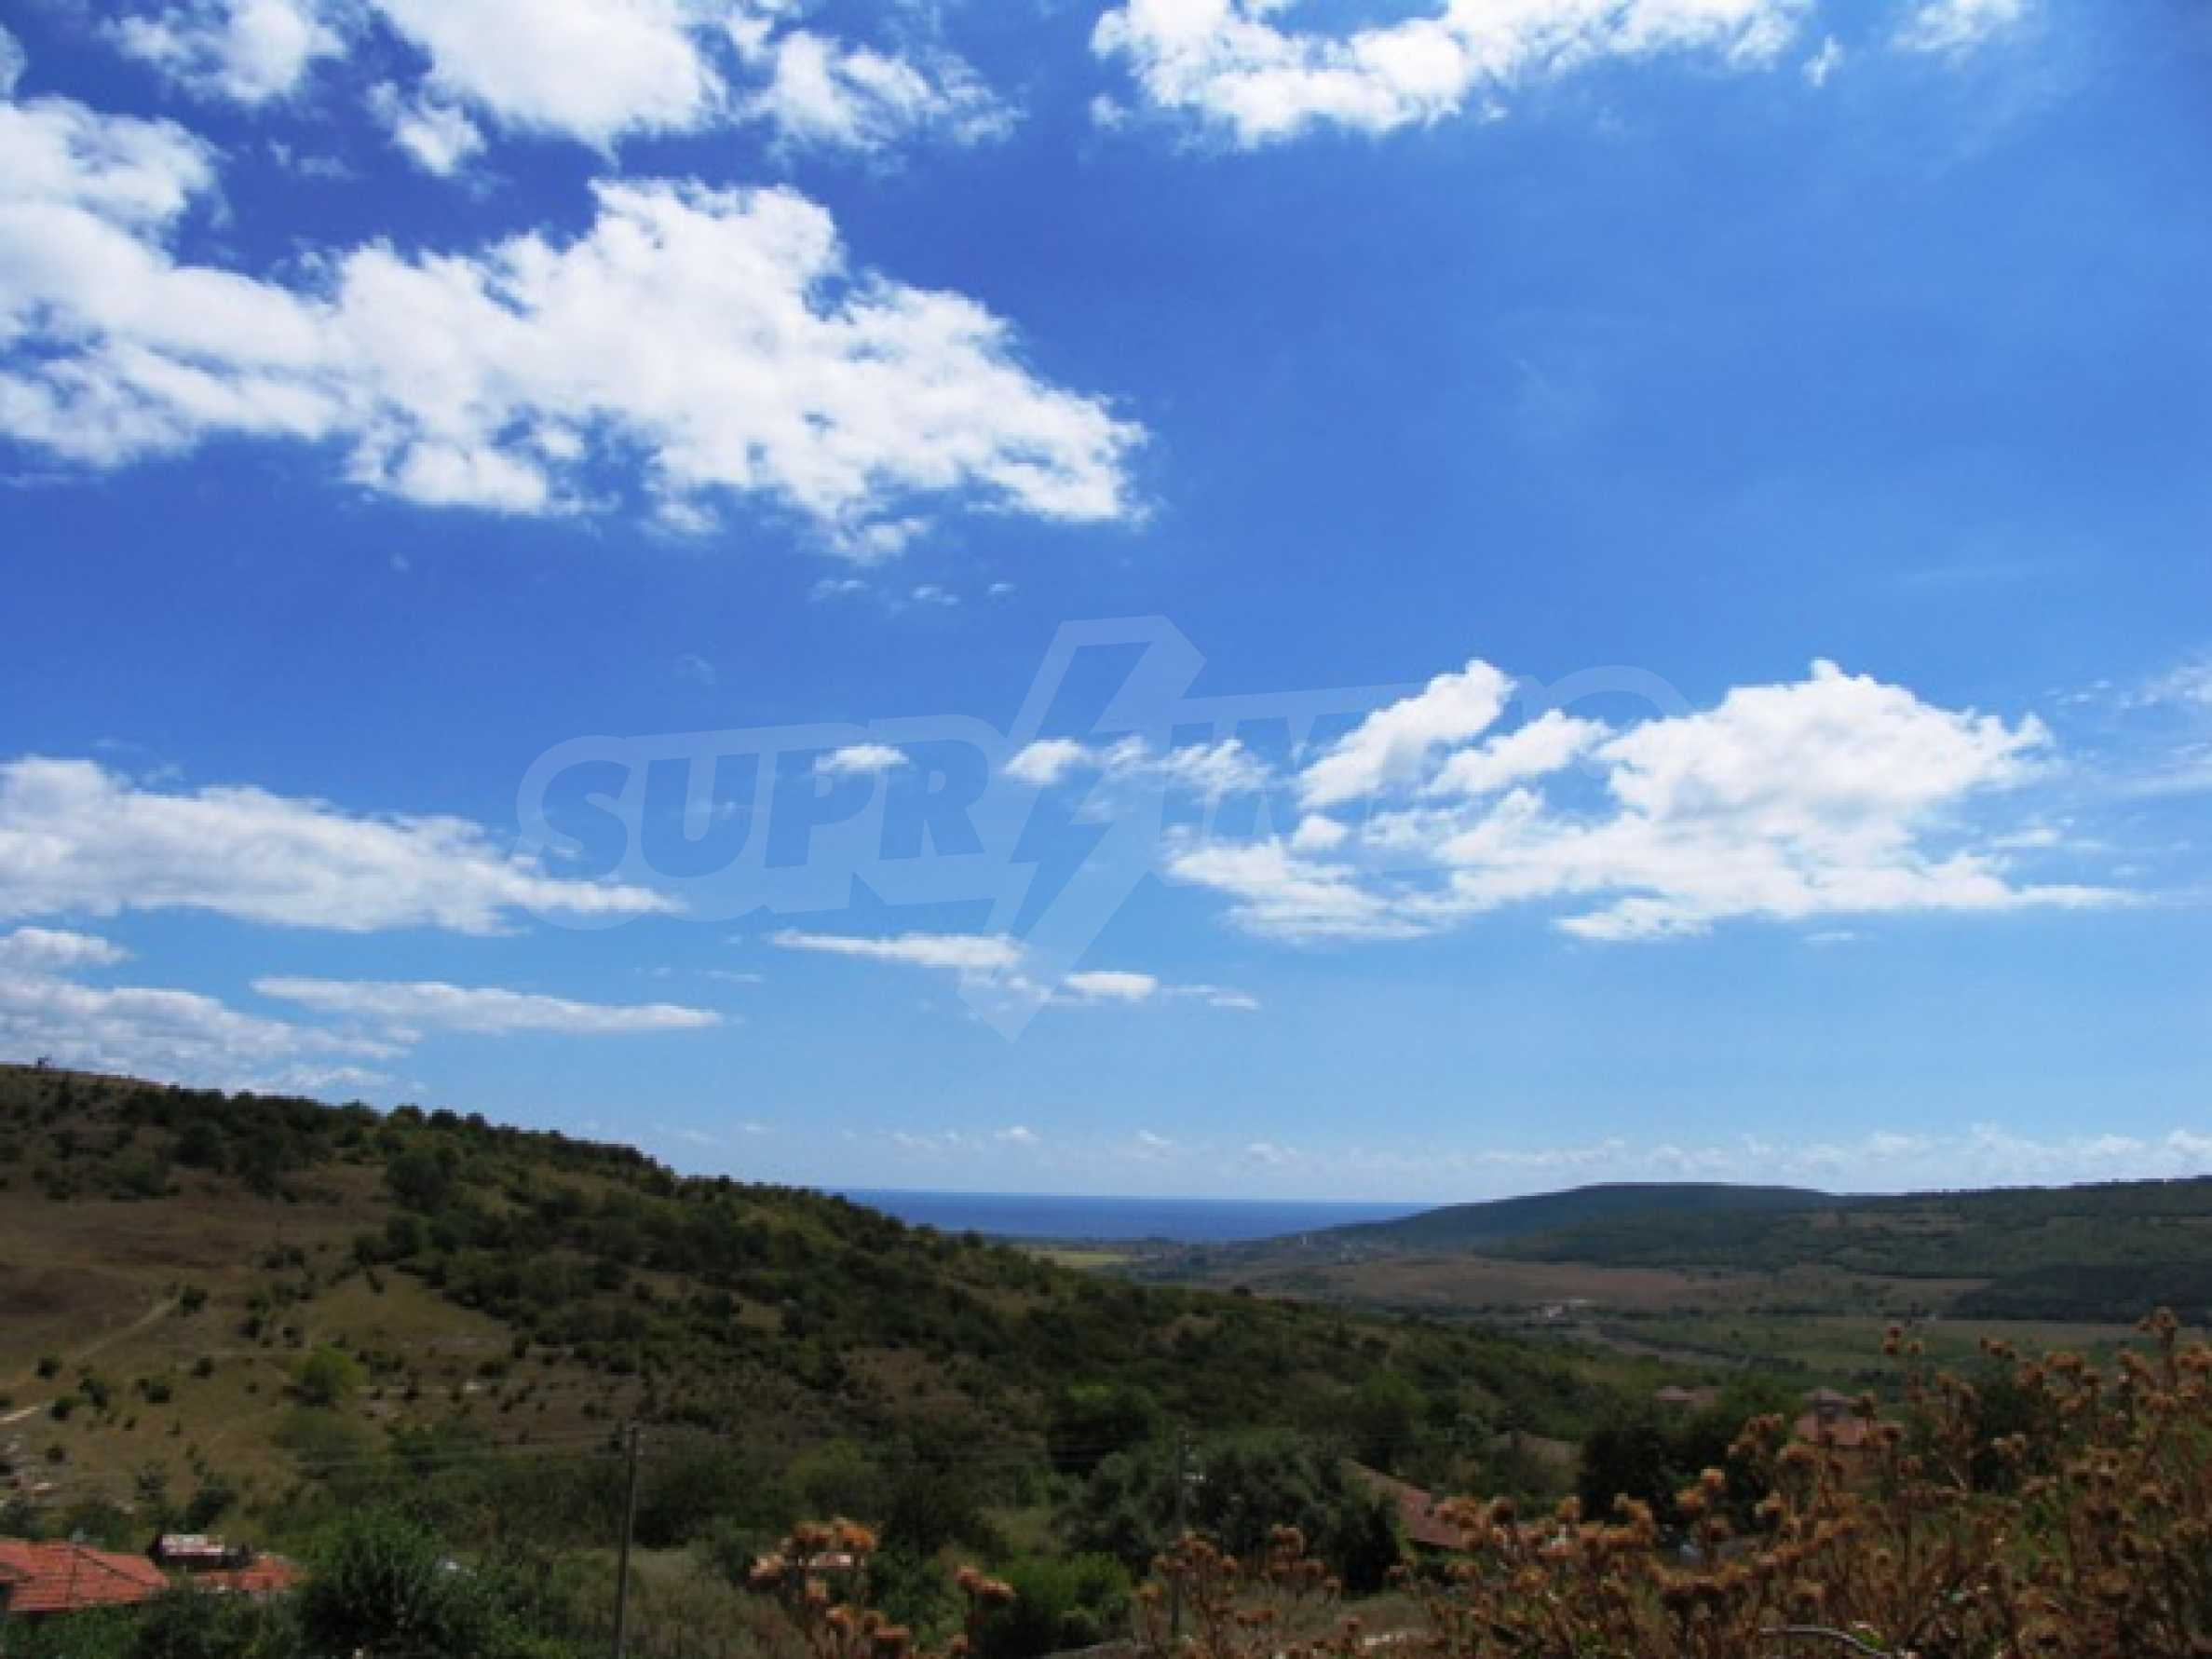 Excellent offer: plot of regulated land at a reasonable price and amazing sea view 20